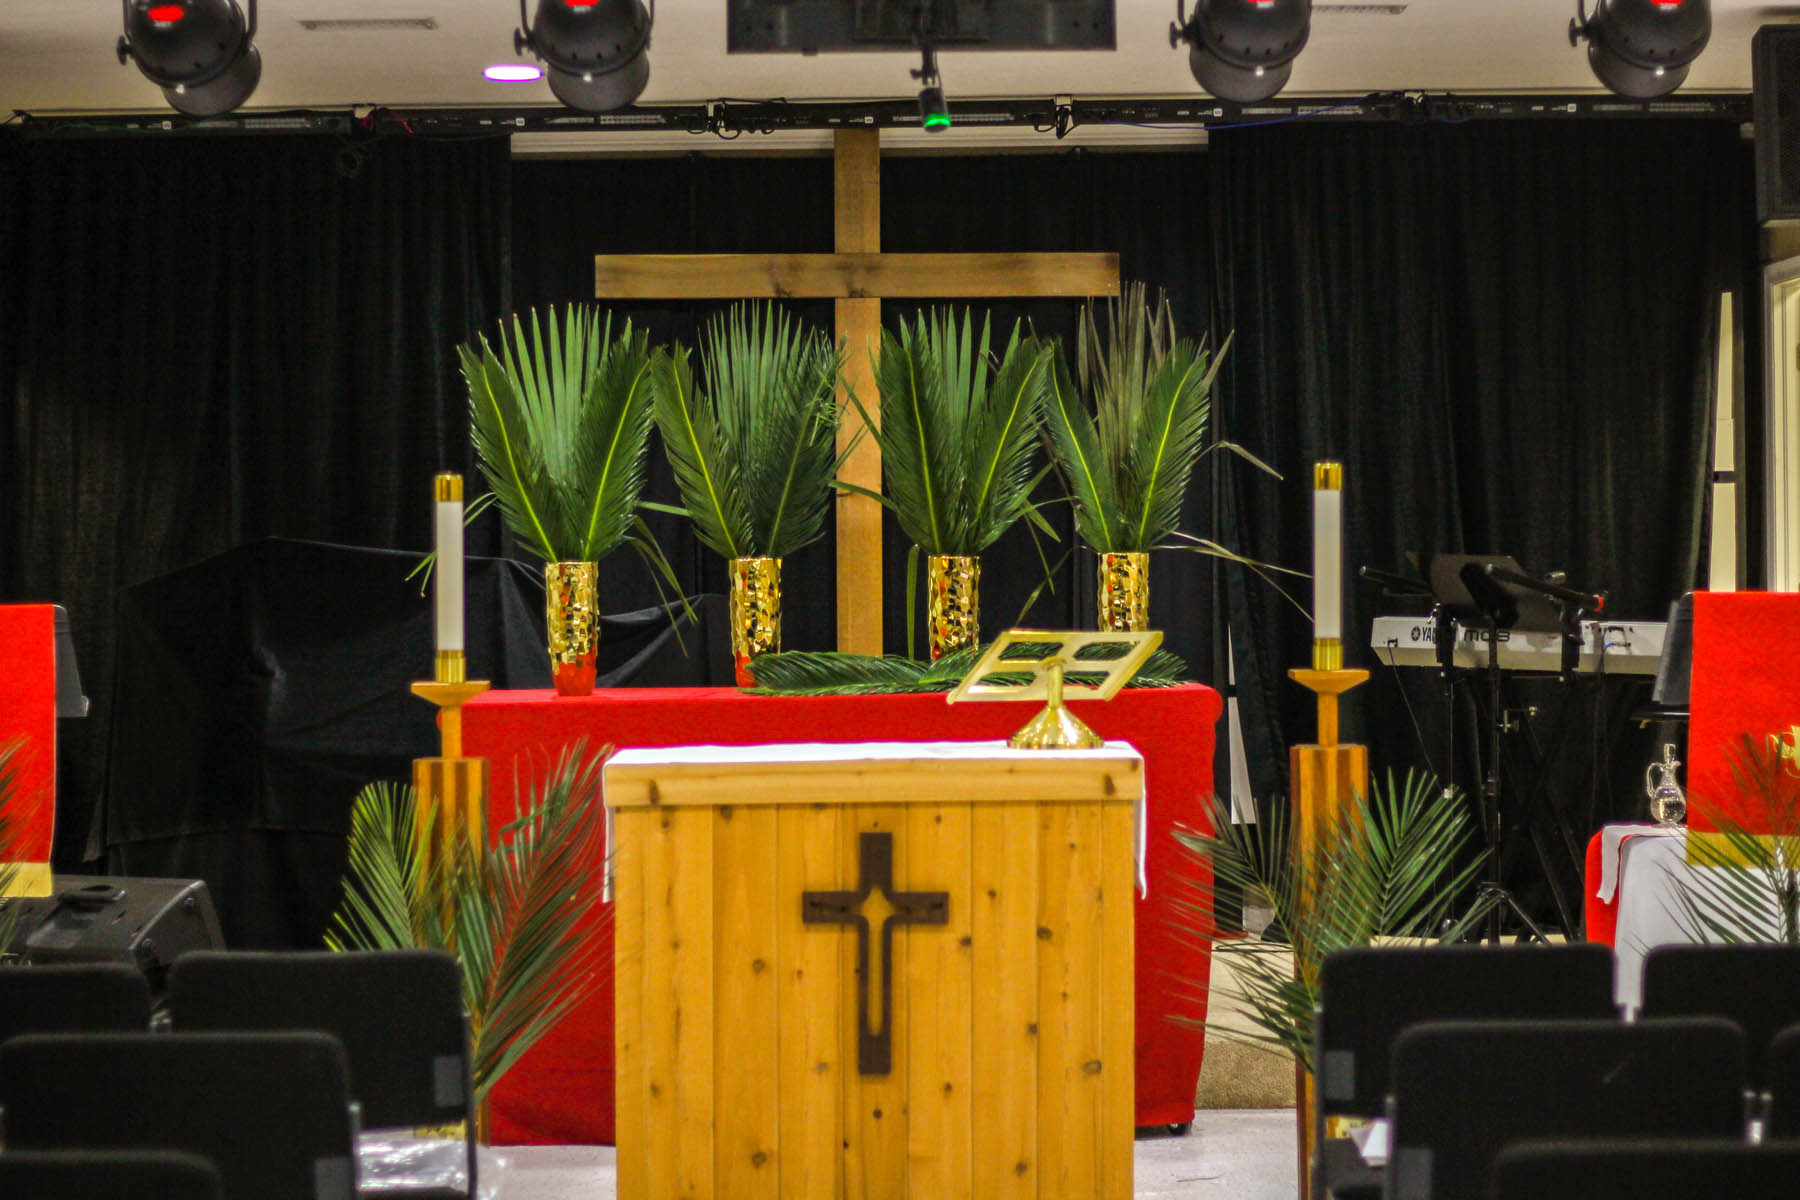 2019-04-14-WCEC-Palm-Sunday-003